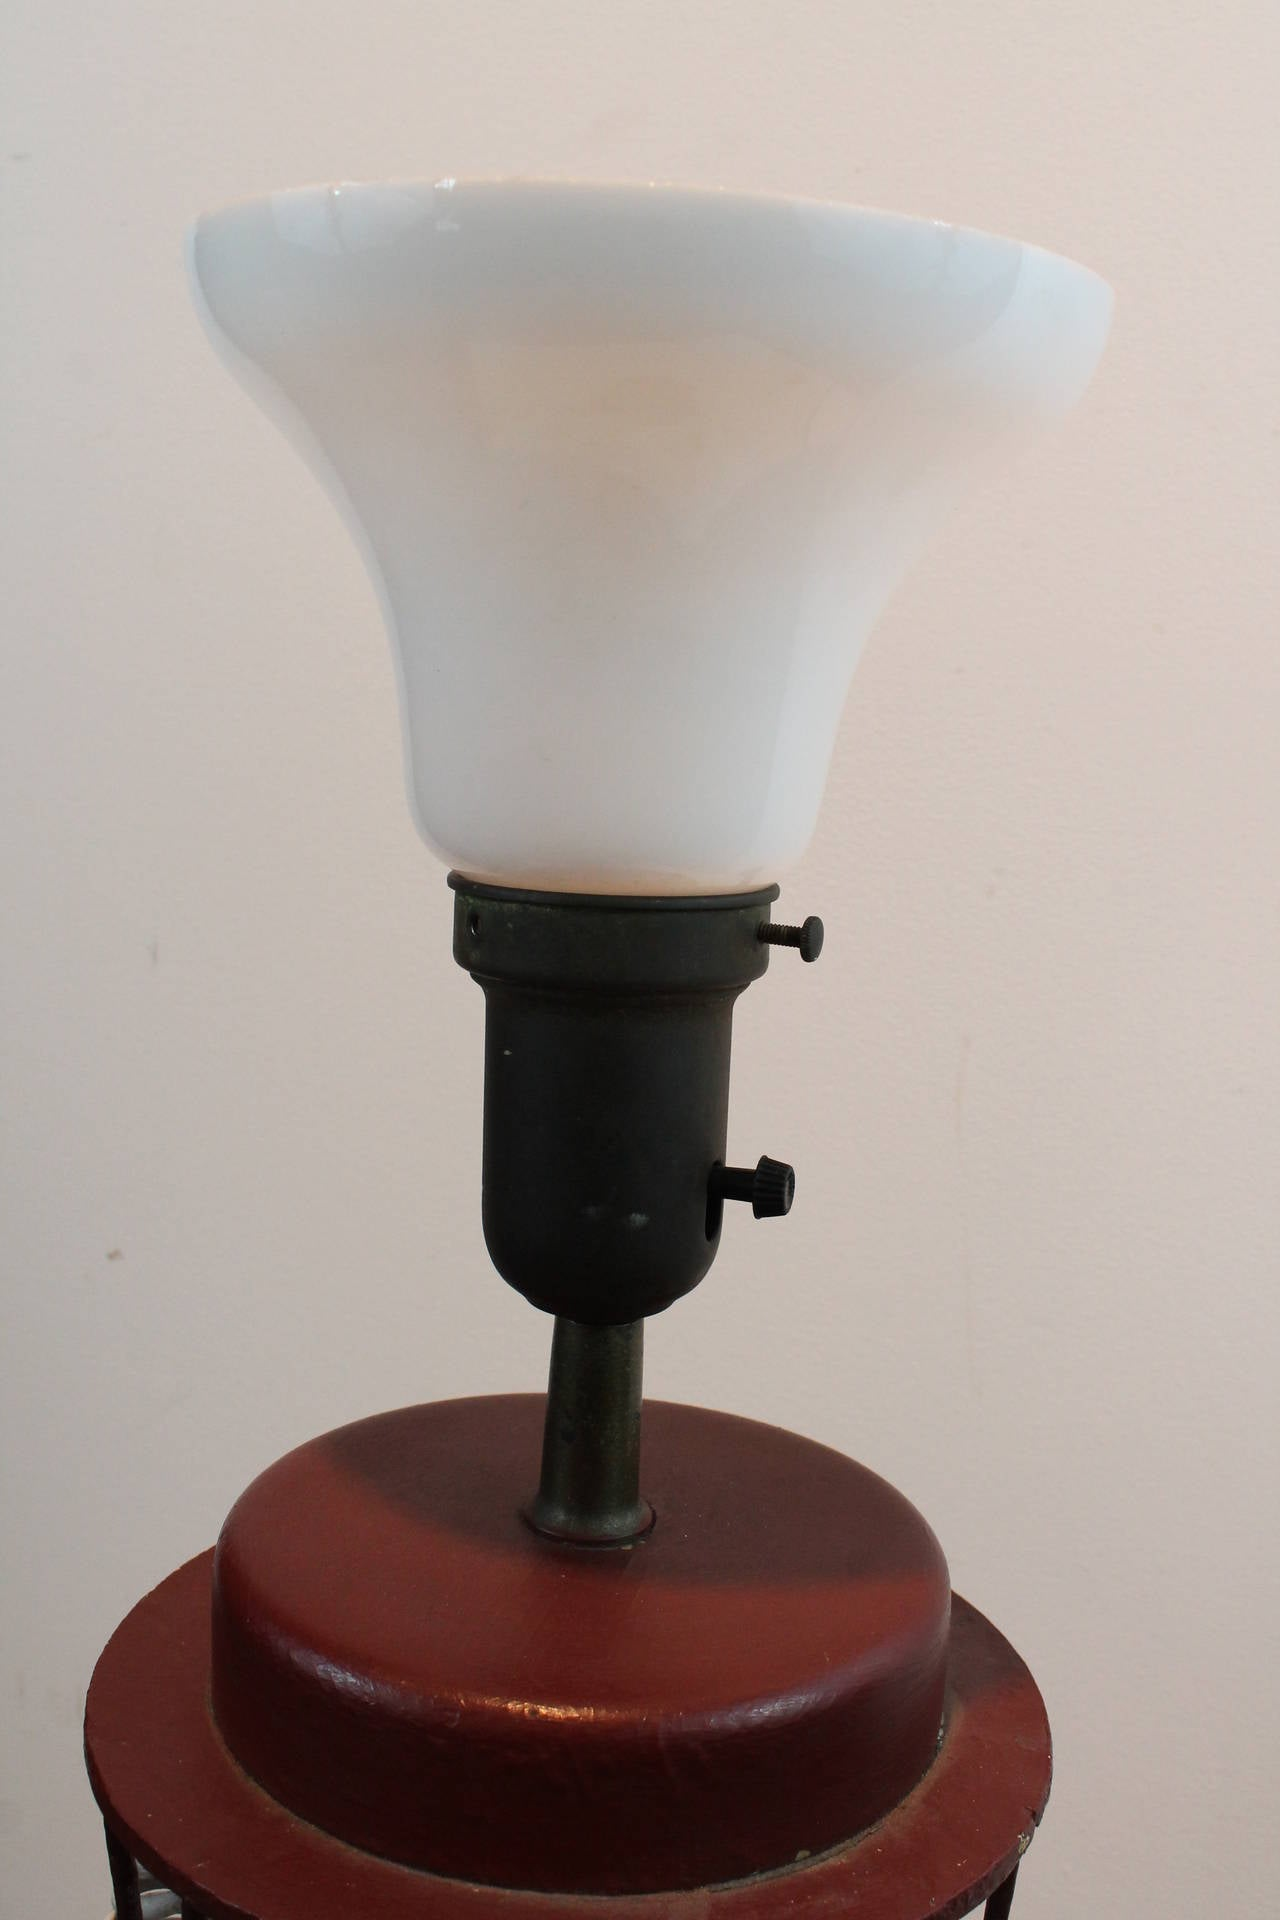 Handmade modernist folk art iron cone finial form table lamp at 1stdibs - Hand made lamps ...